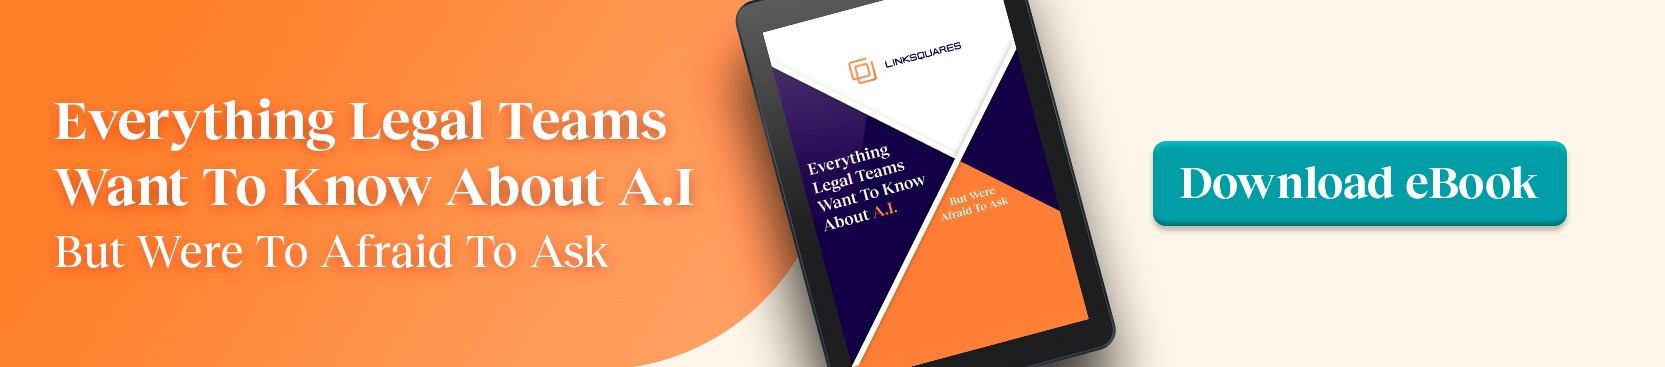 everything legal teams want to know about ai ebook